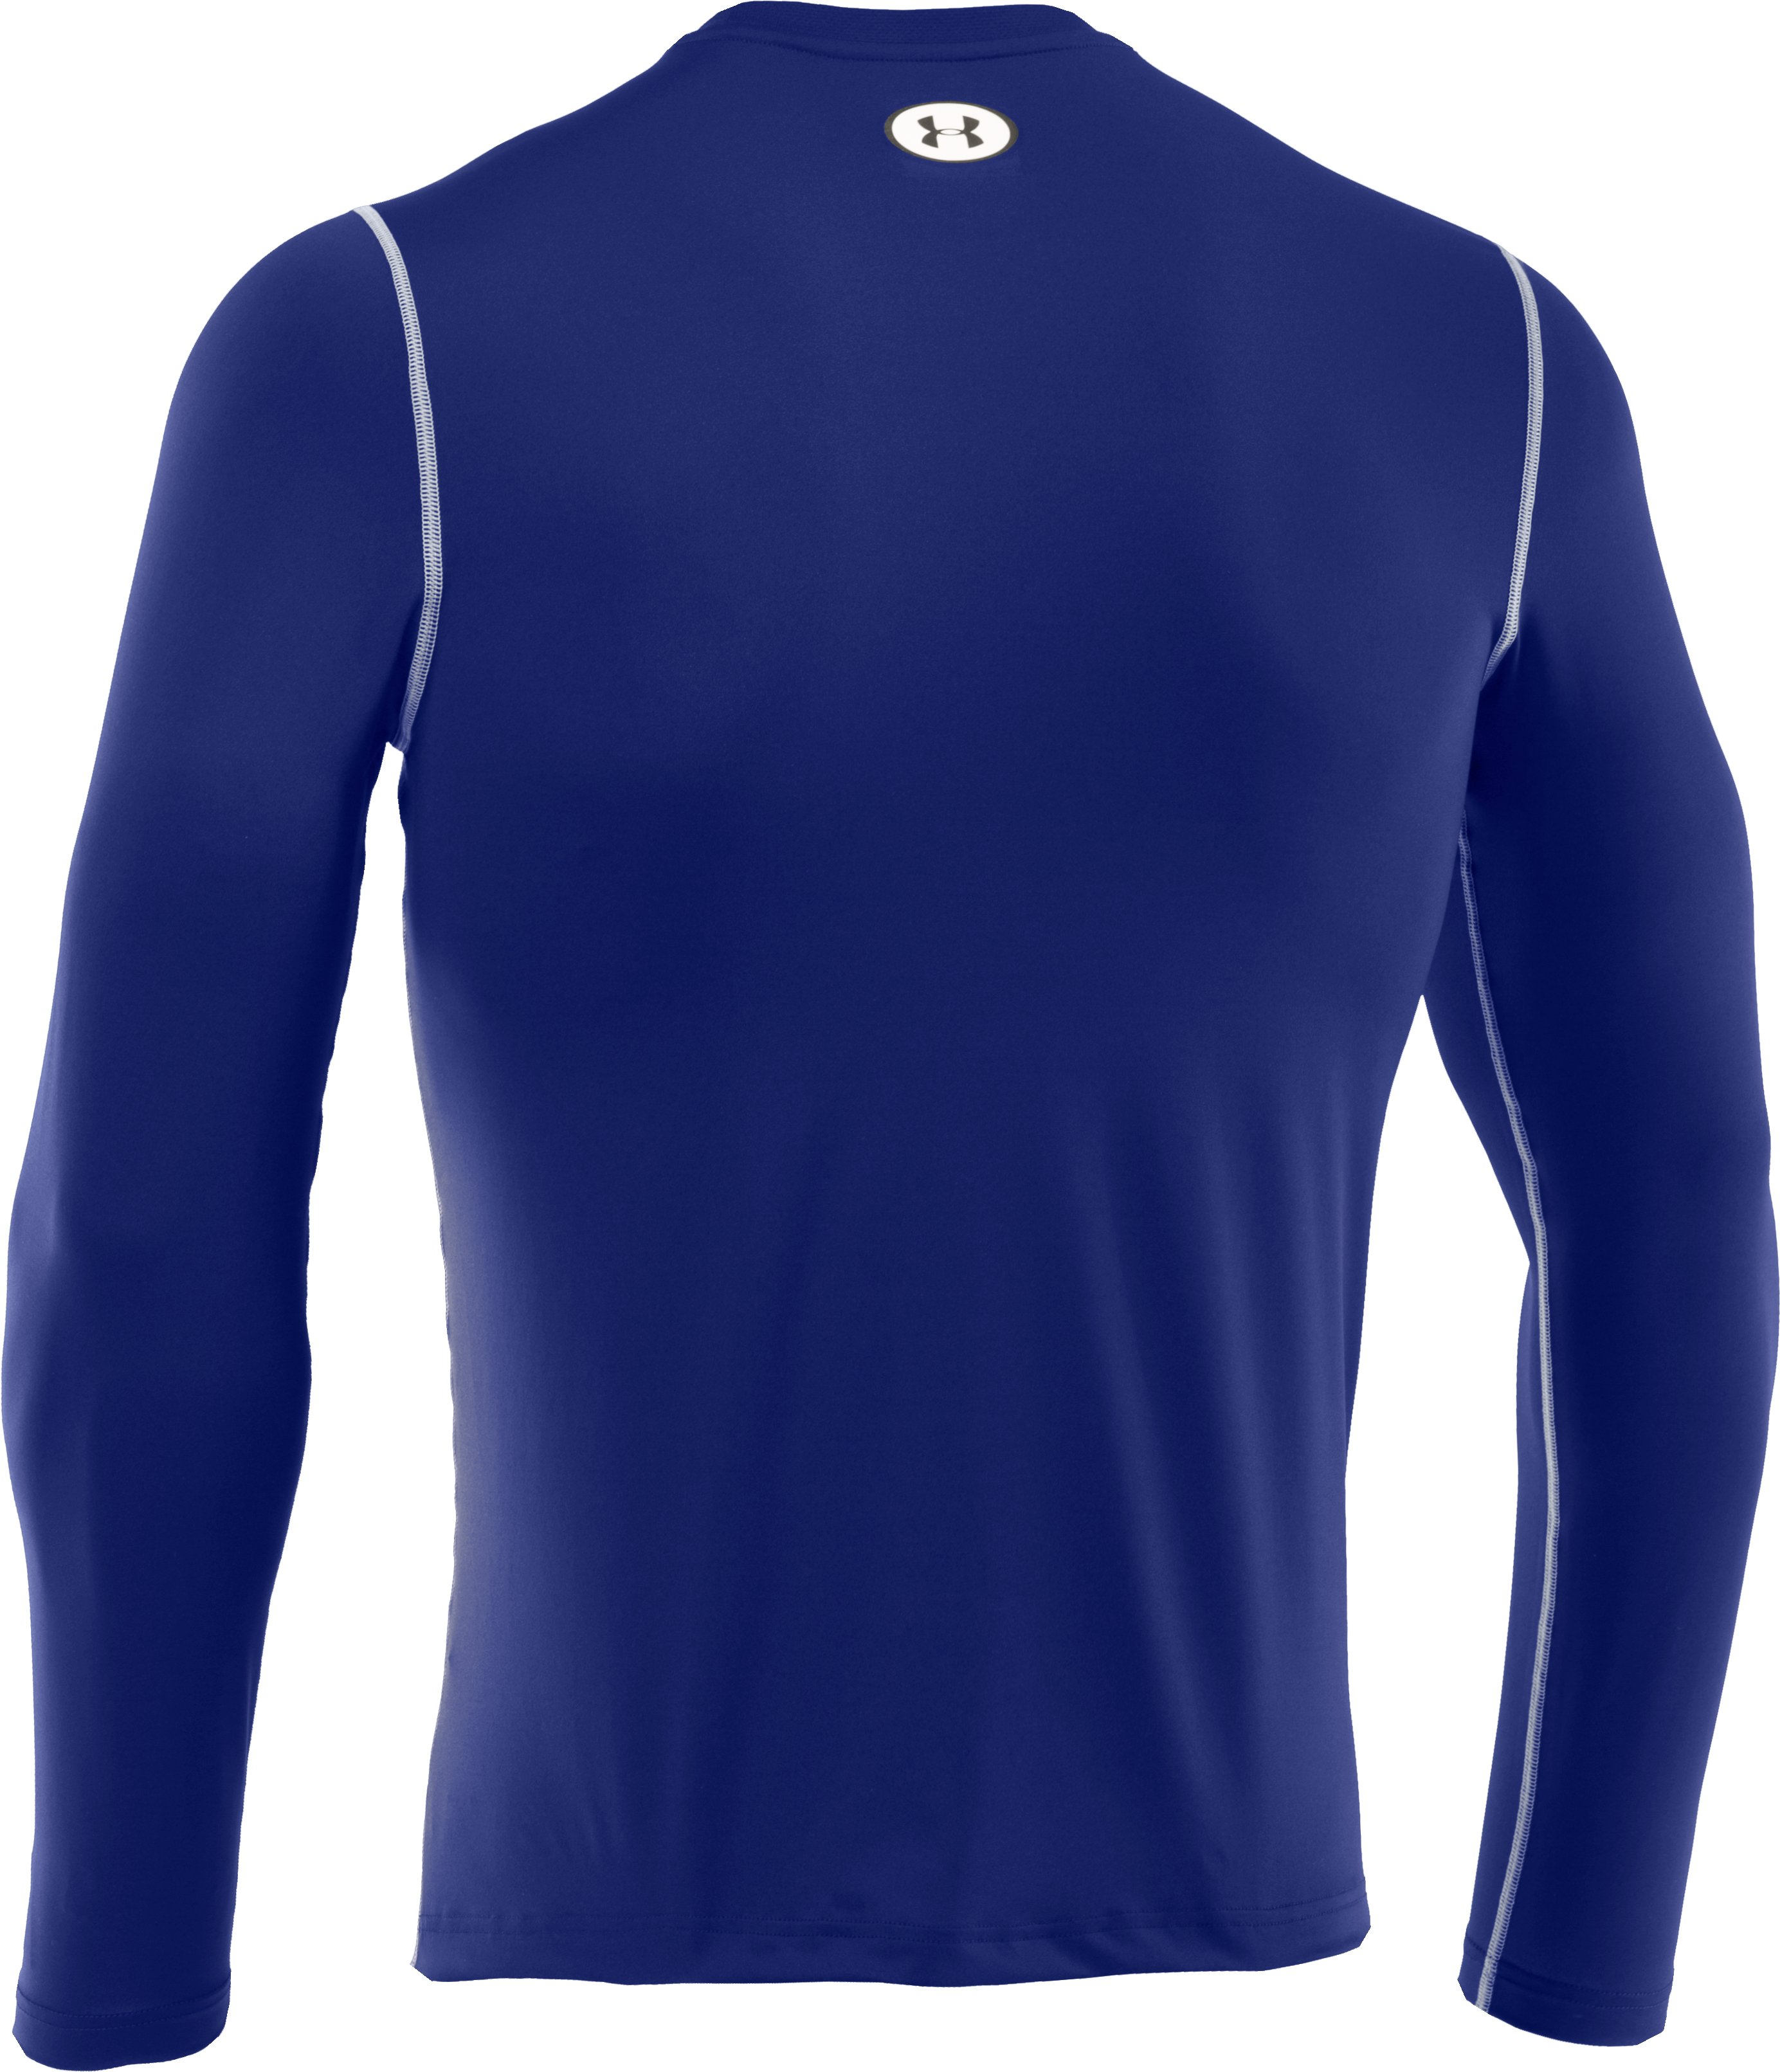 Men's HeatGear® Sonic Fitted Long Sleeve, Royal, undefined